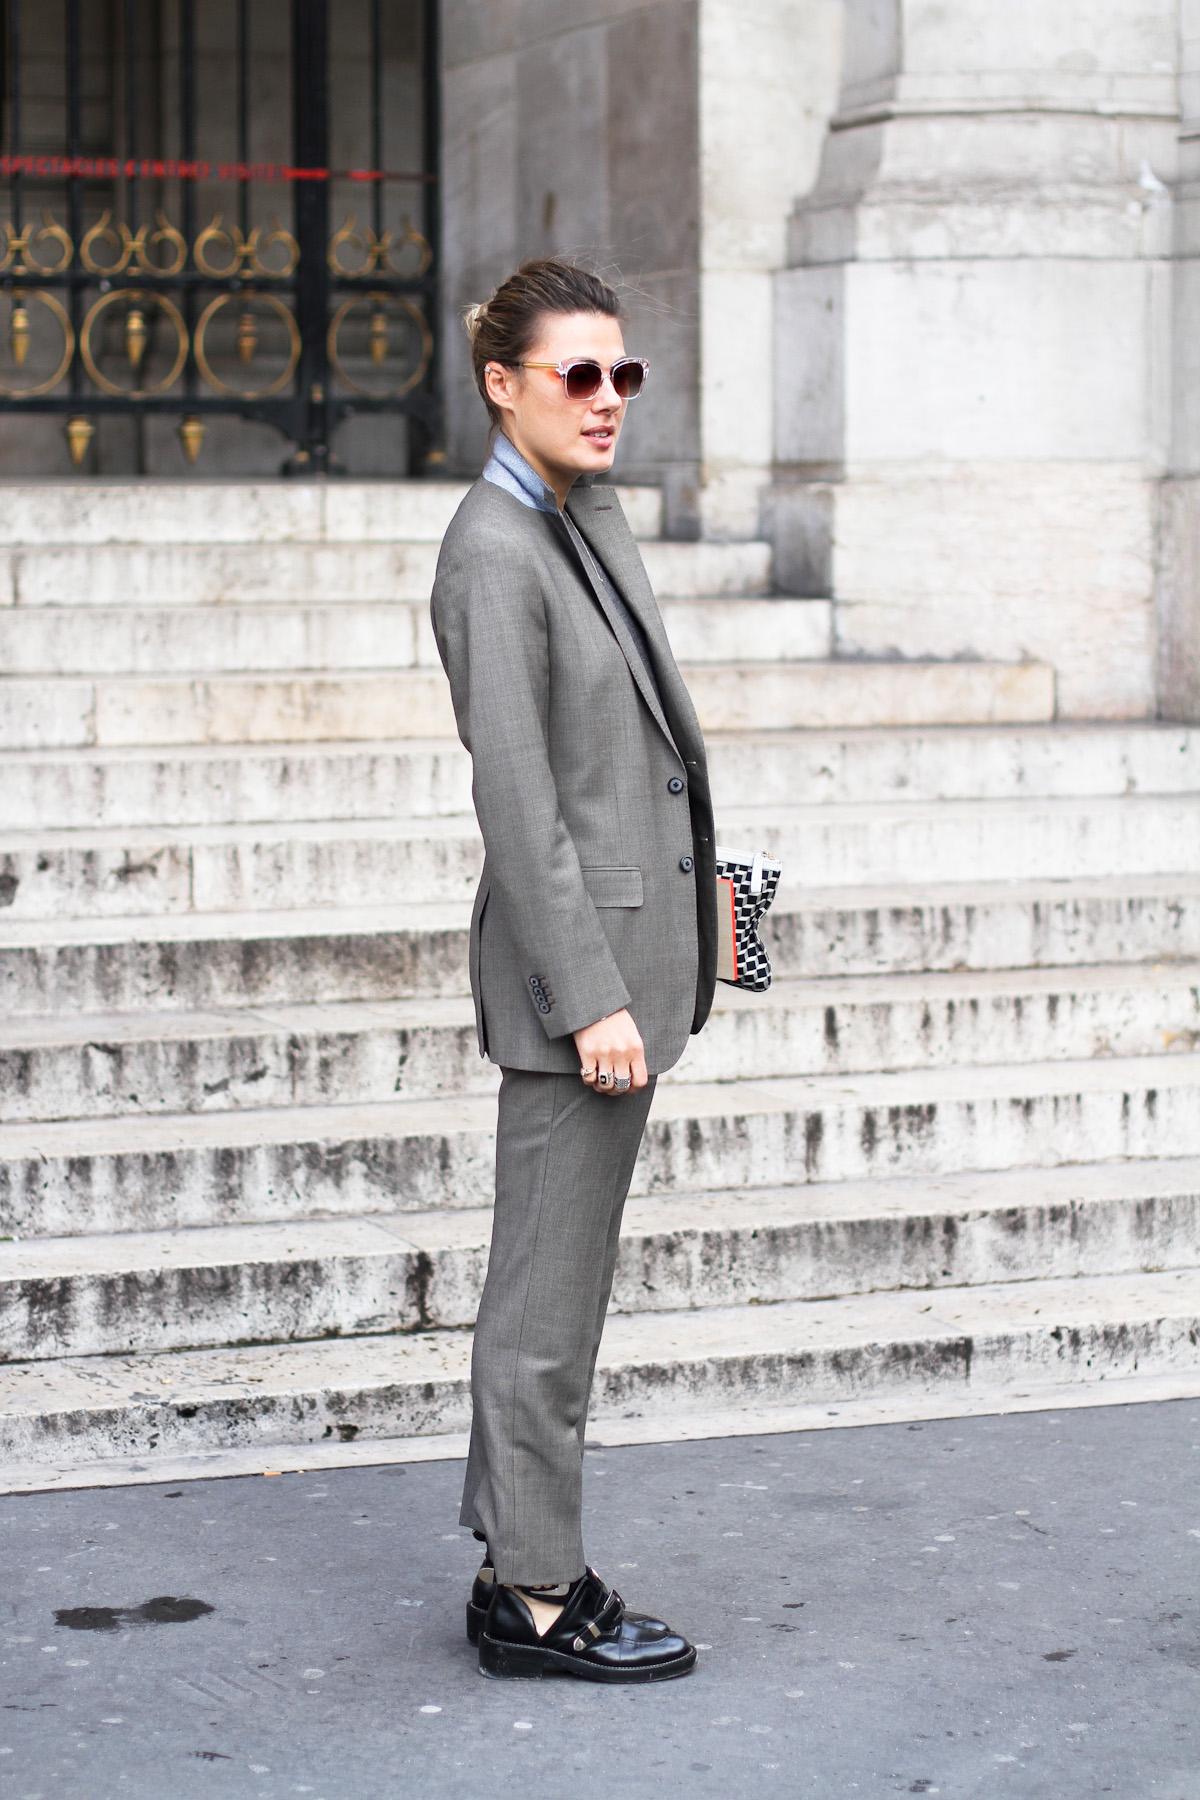 clochet - outfit- streetstyle - paris fashion week - balenciaga cut out boots - grey suit-5